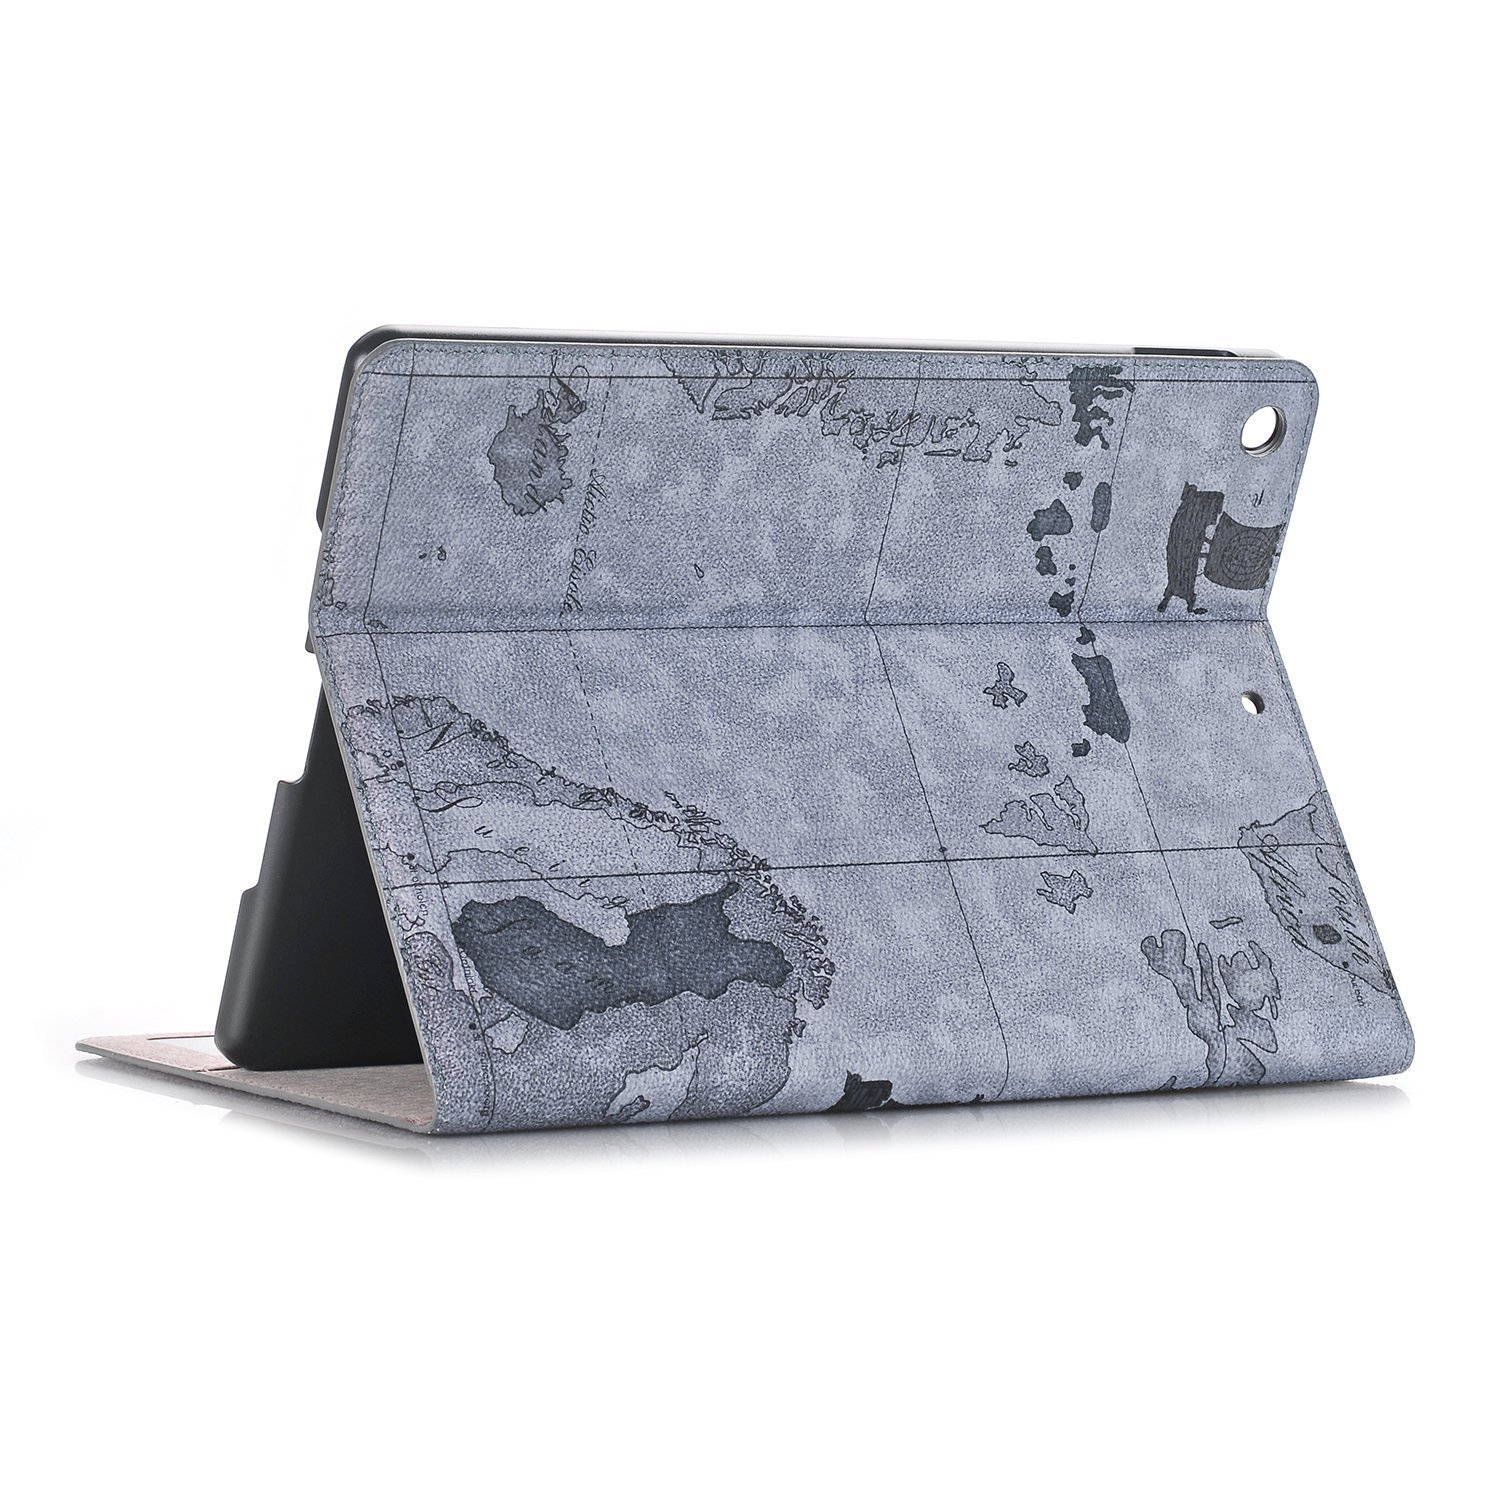 Jennyfly iPad 3 Cover,Ultra Thin Luxury PU Leather Protective Cover with Card Slot Smart Hand Free Book Style Stand Case for 9.7 inch iPad 2/3/4 - Gray